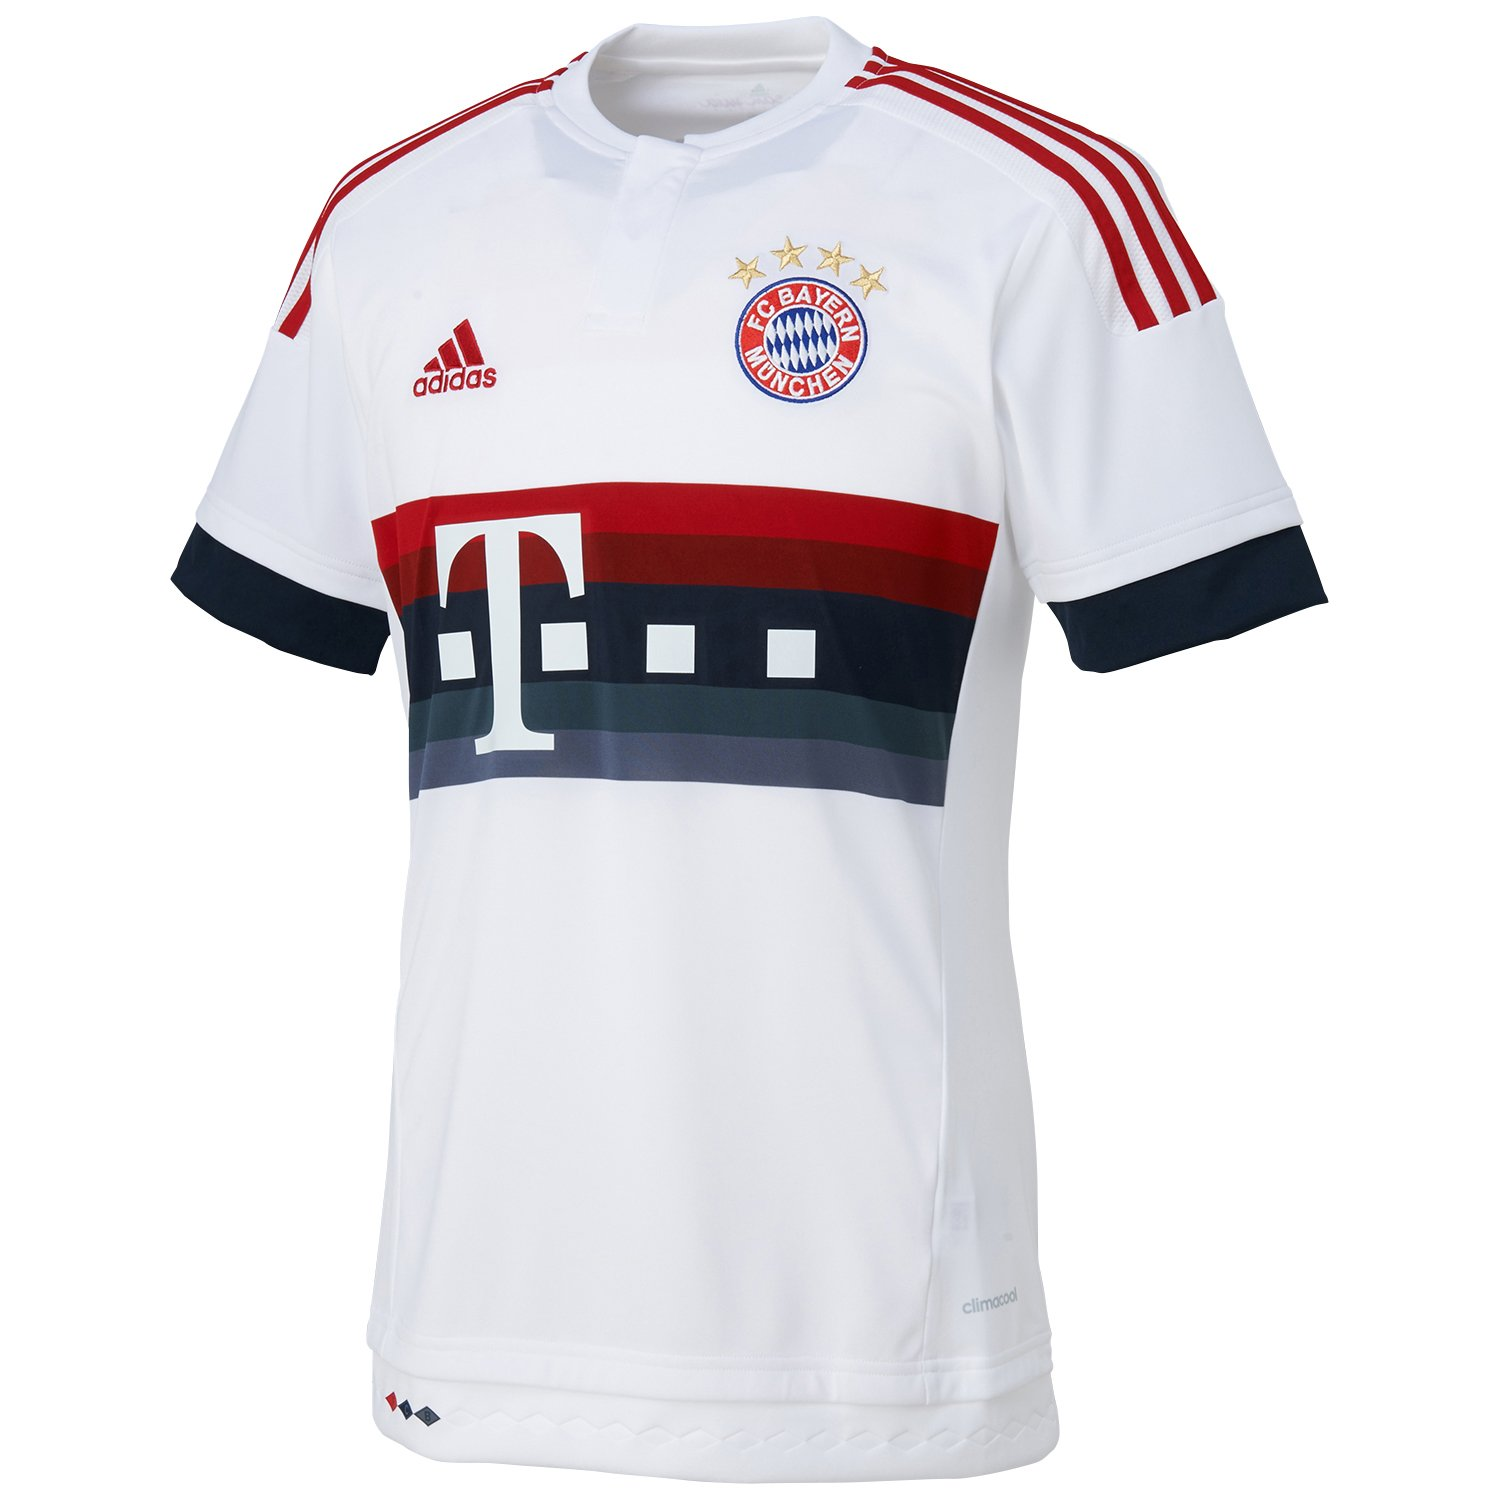 Amazon.com : Bayern Munich Away KIDS Jersey 2015 / 2016 : Sports & Outdoors